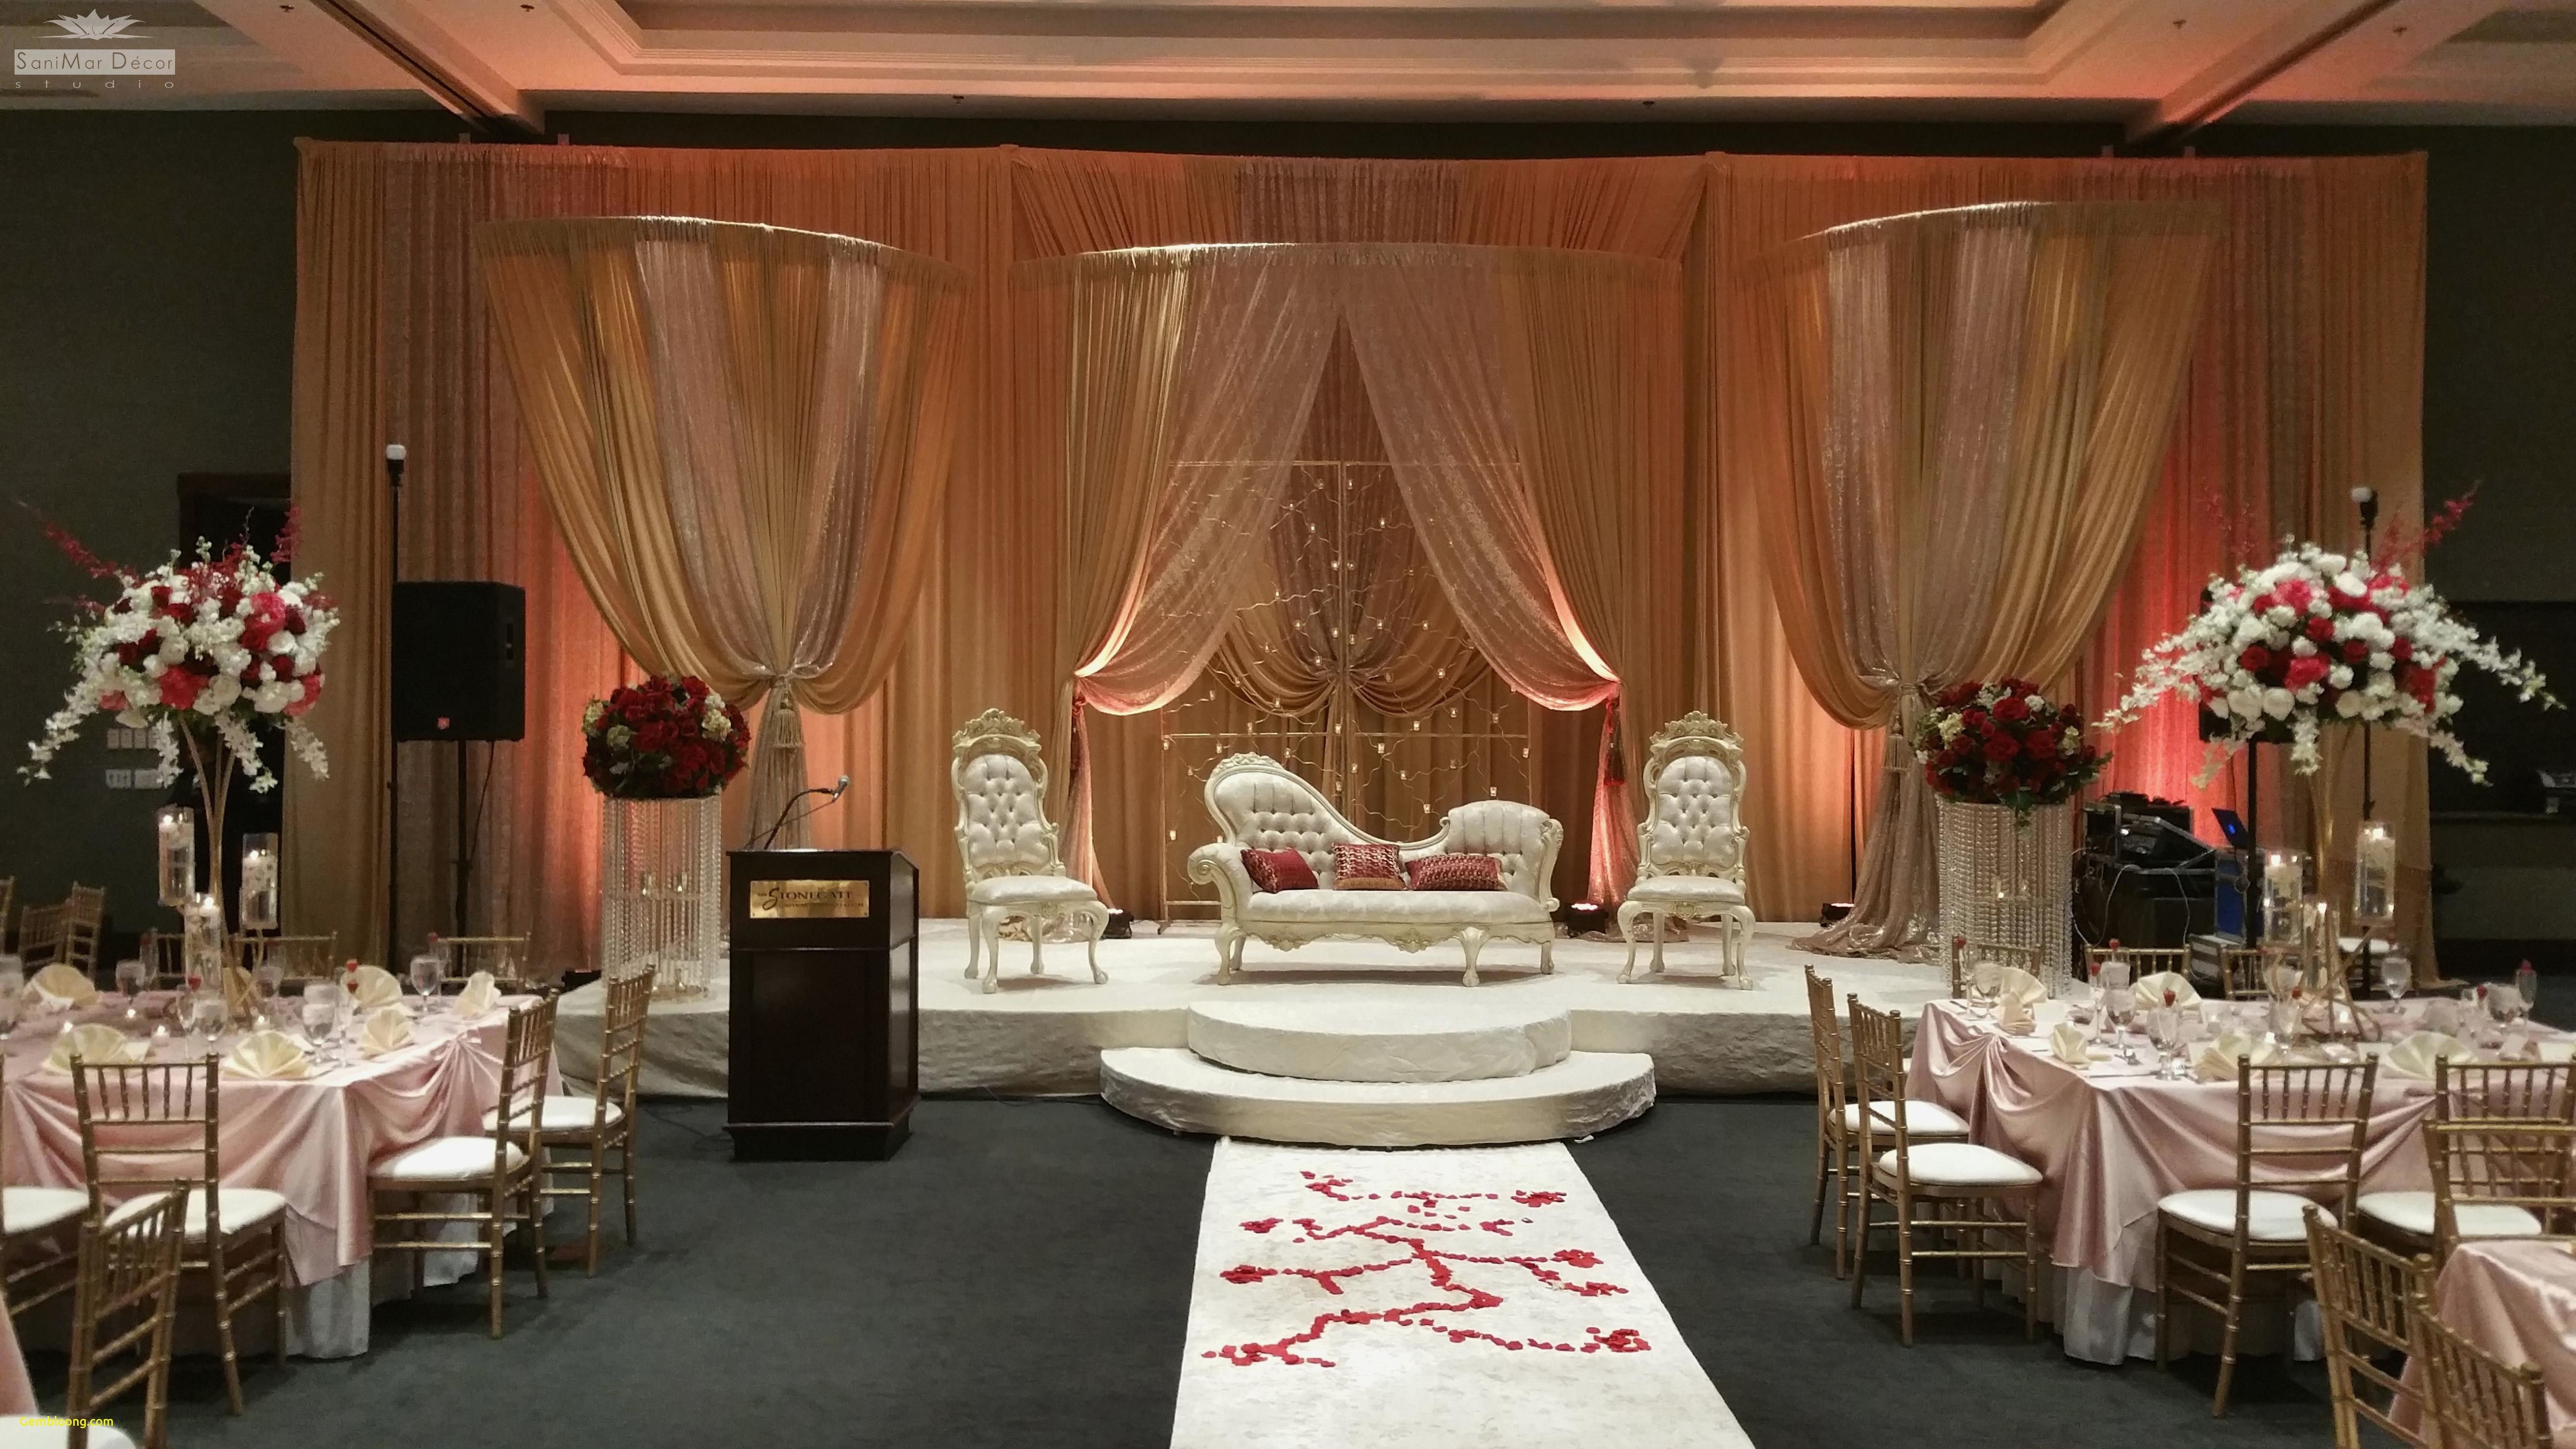 Fall wedding decoration  how to capture the colors of season new home decorating ideas for talentneeds also rh pinterest